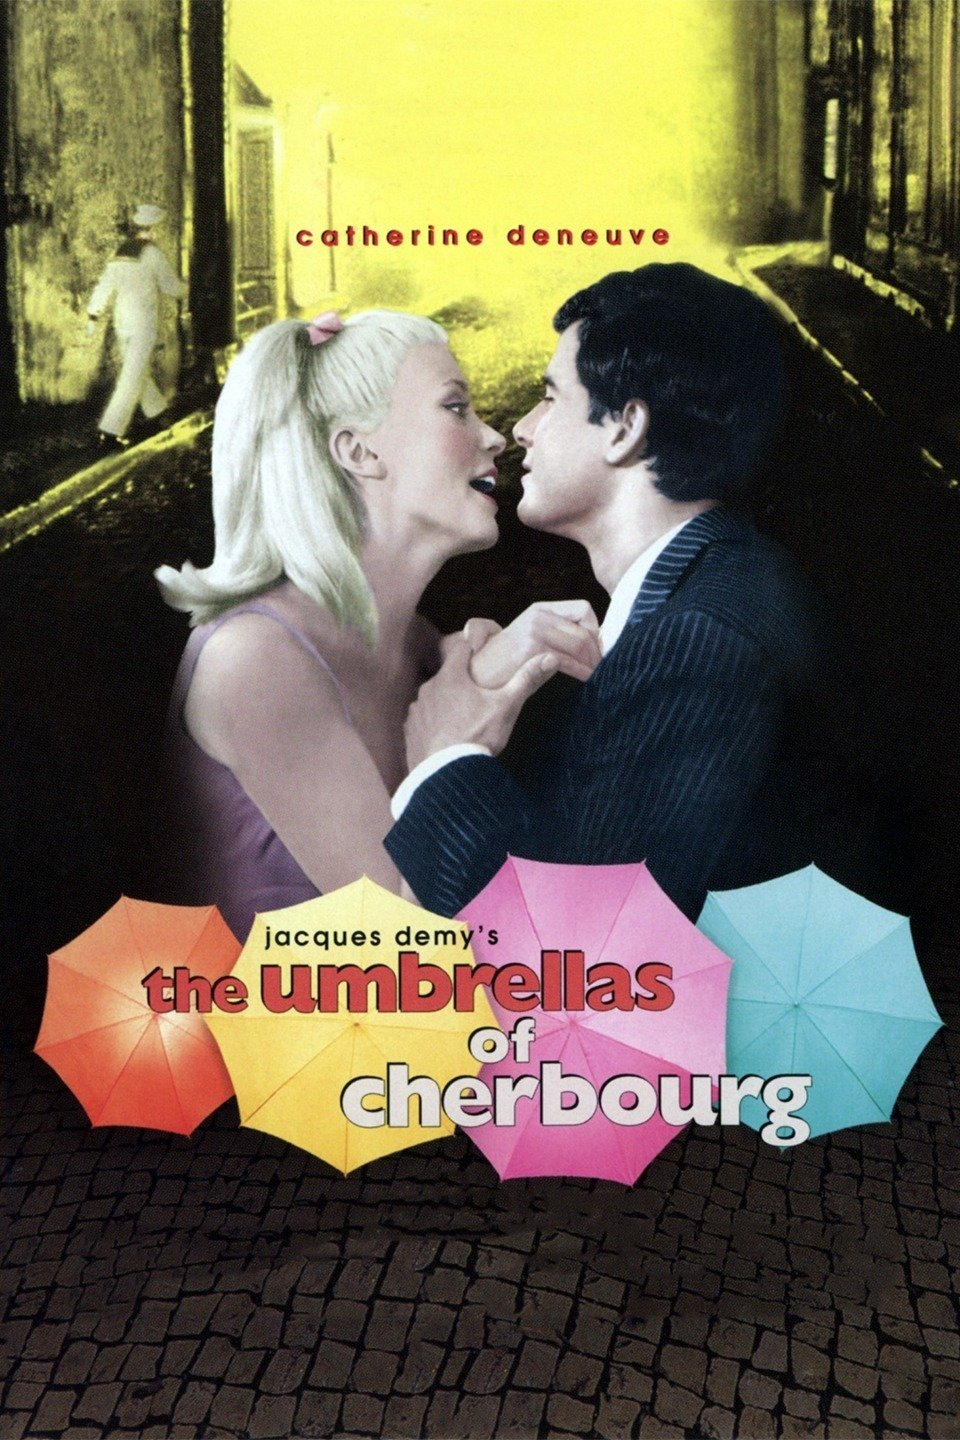 The Umbrellas of Cherbourg-Les parapluies de Cherbourg